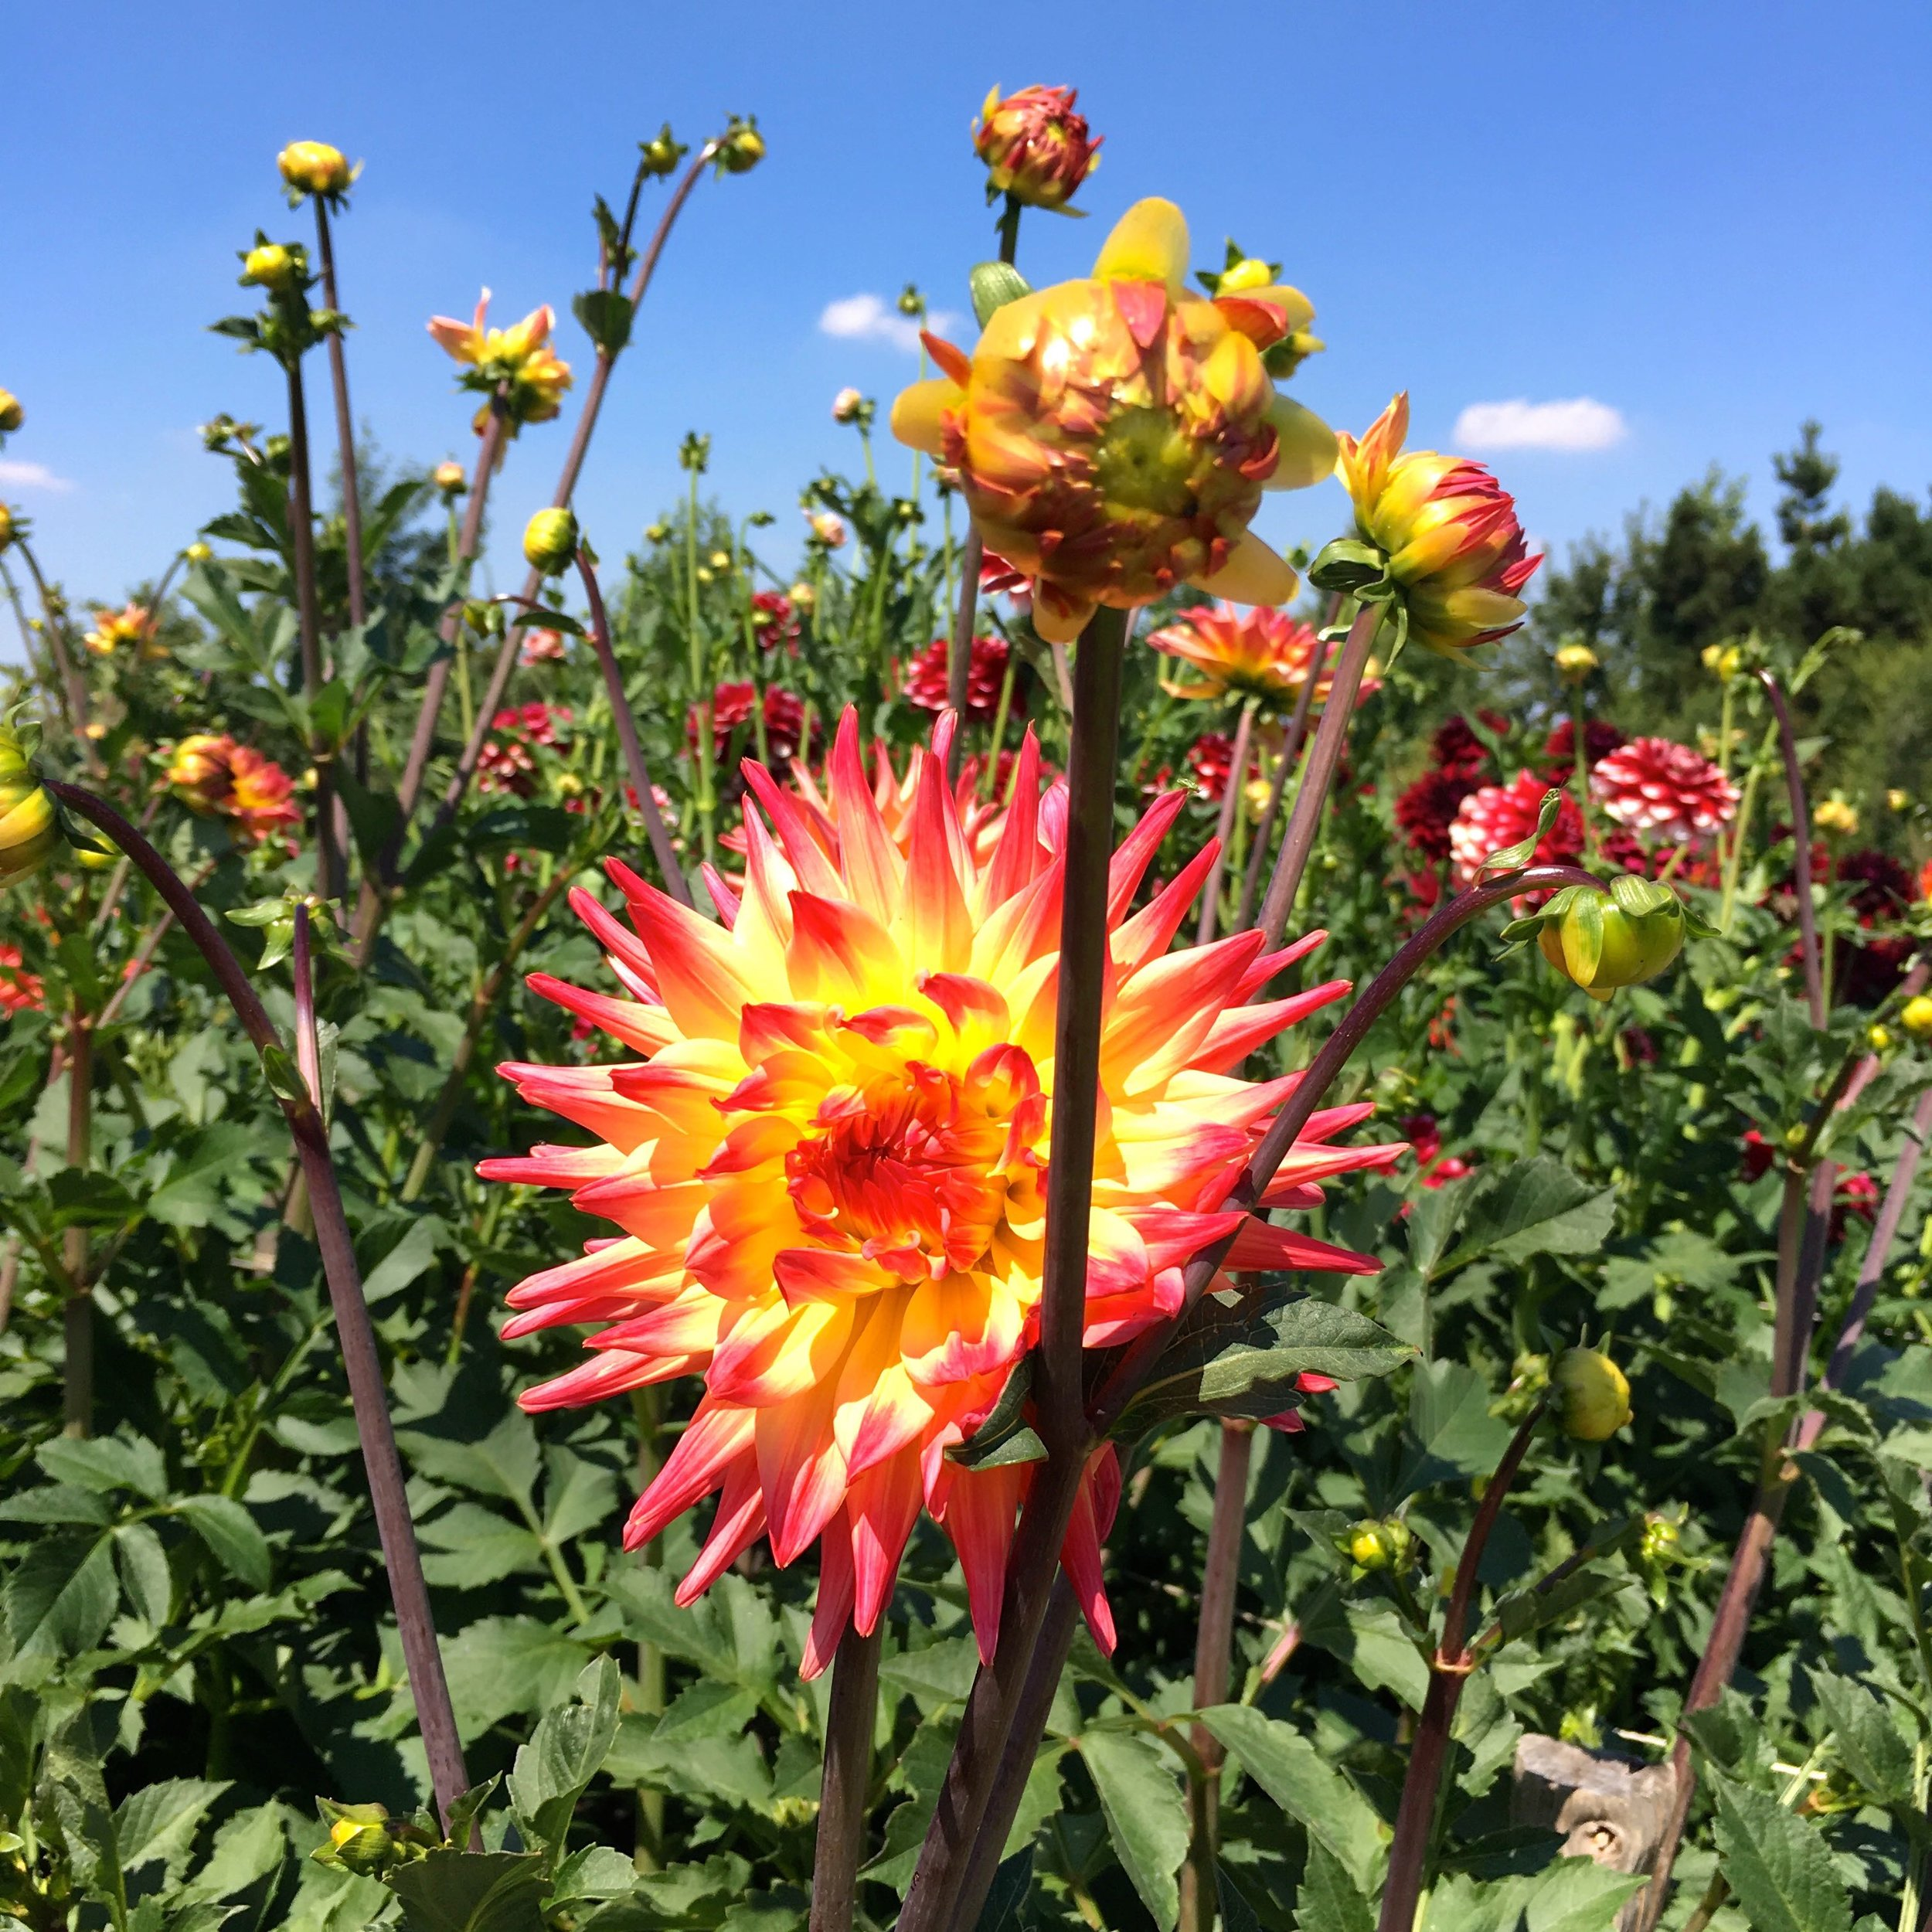 falling in love with dahlias at RHS hyde hall